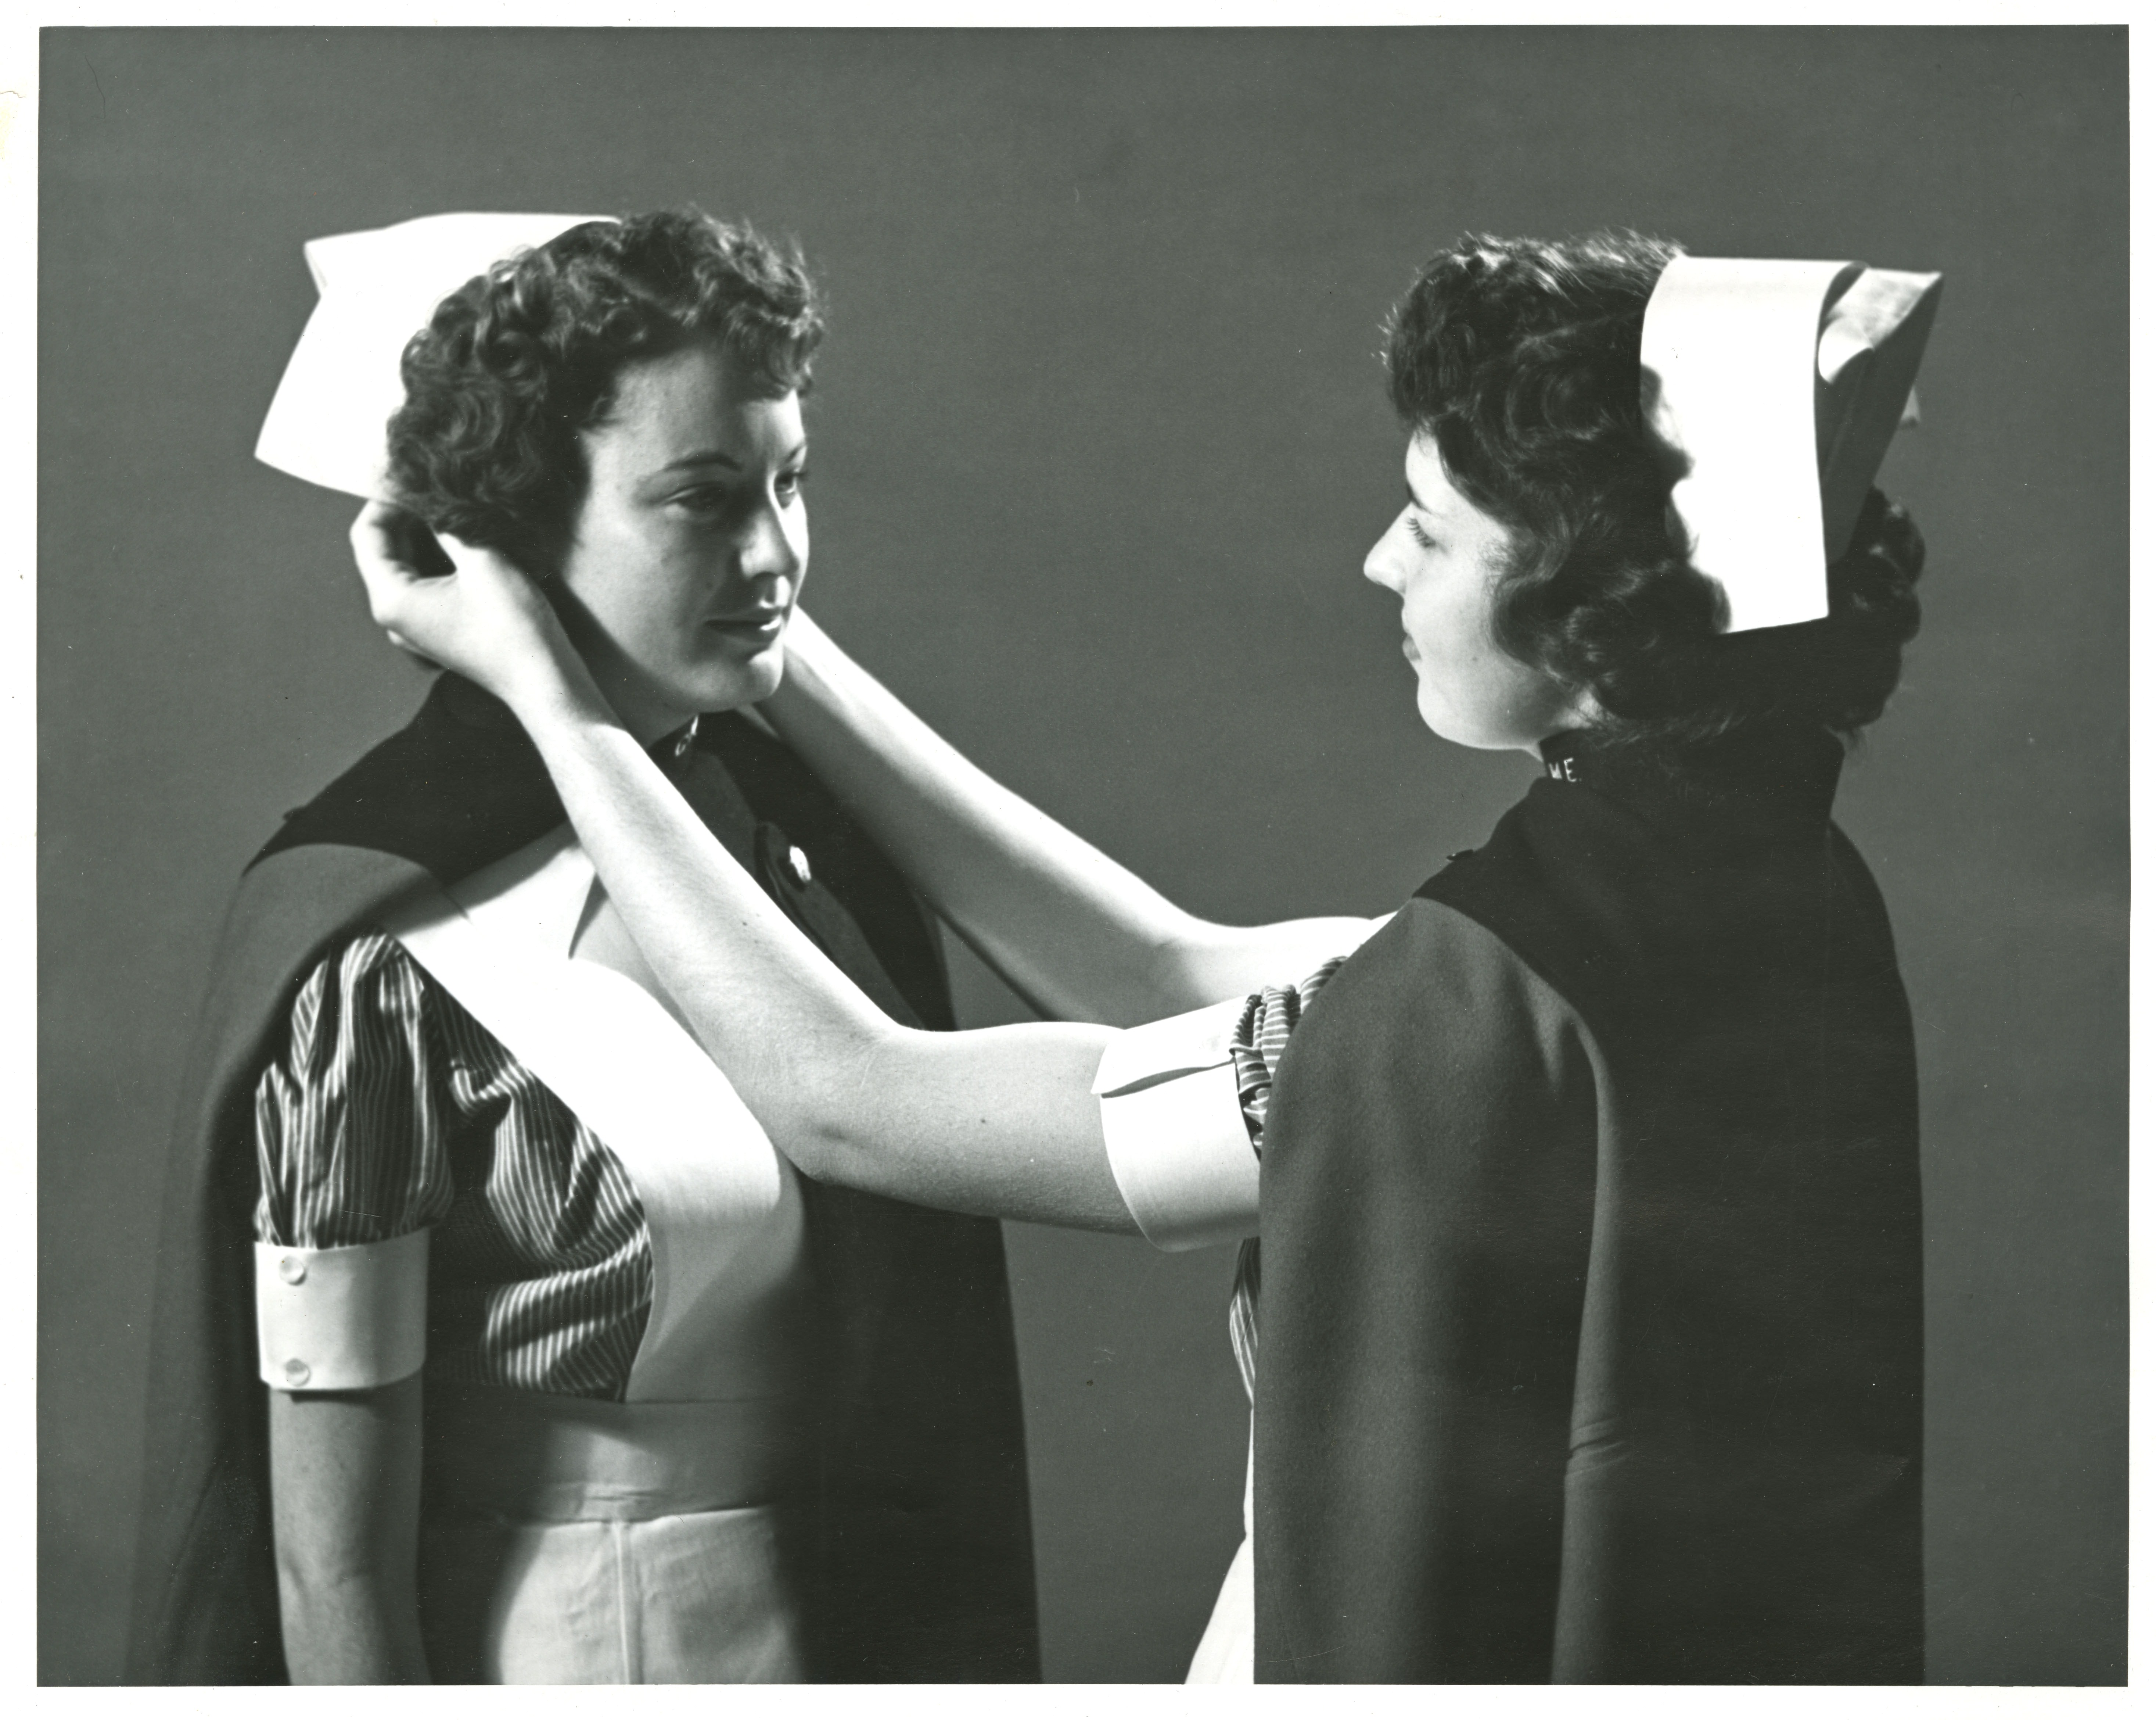 A photograph of student nurses in uniforms performing the capping ceremony, which is part of the graduation ceremonies.